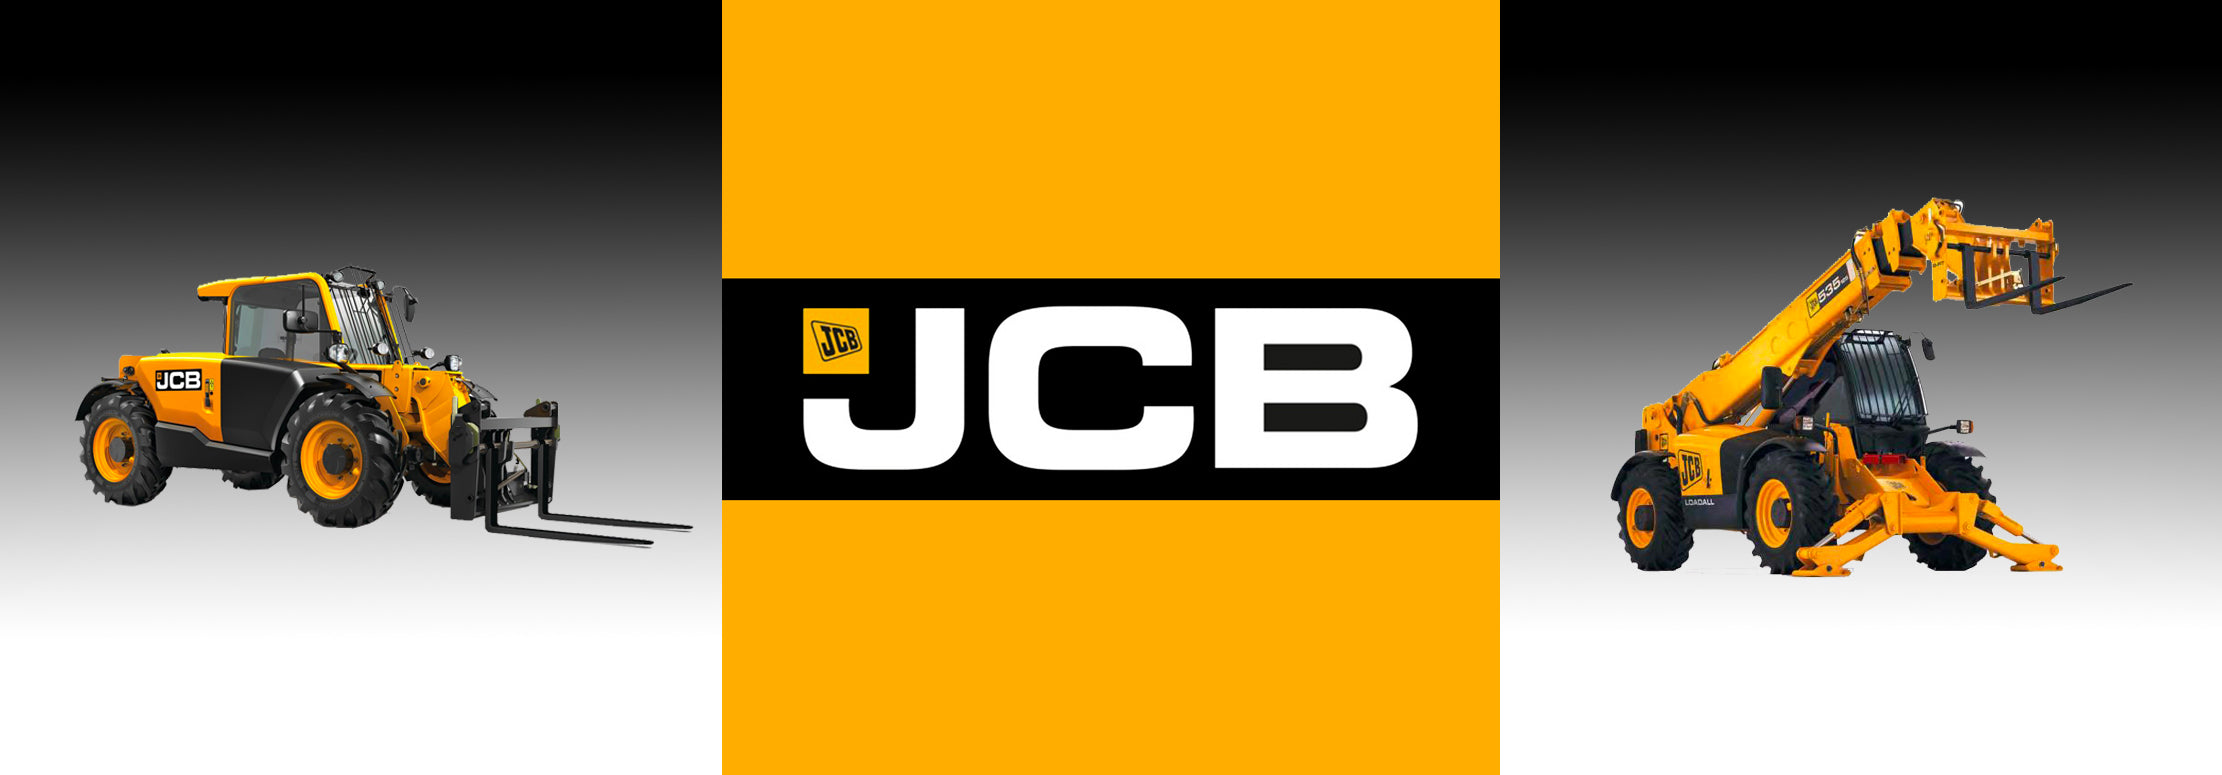 JCB Equipment tire covers tire socks tire boots drip protection diapers surface protection